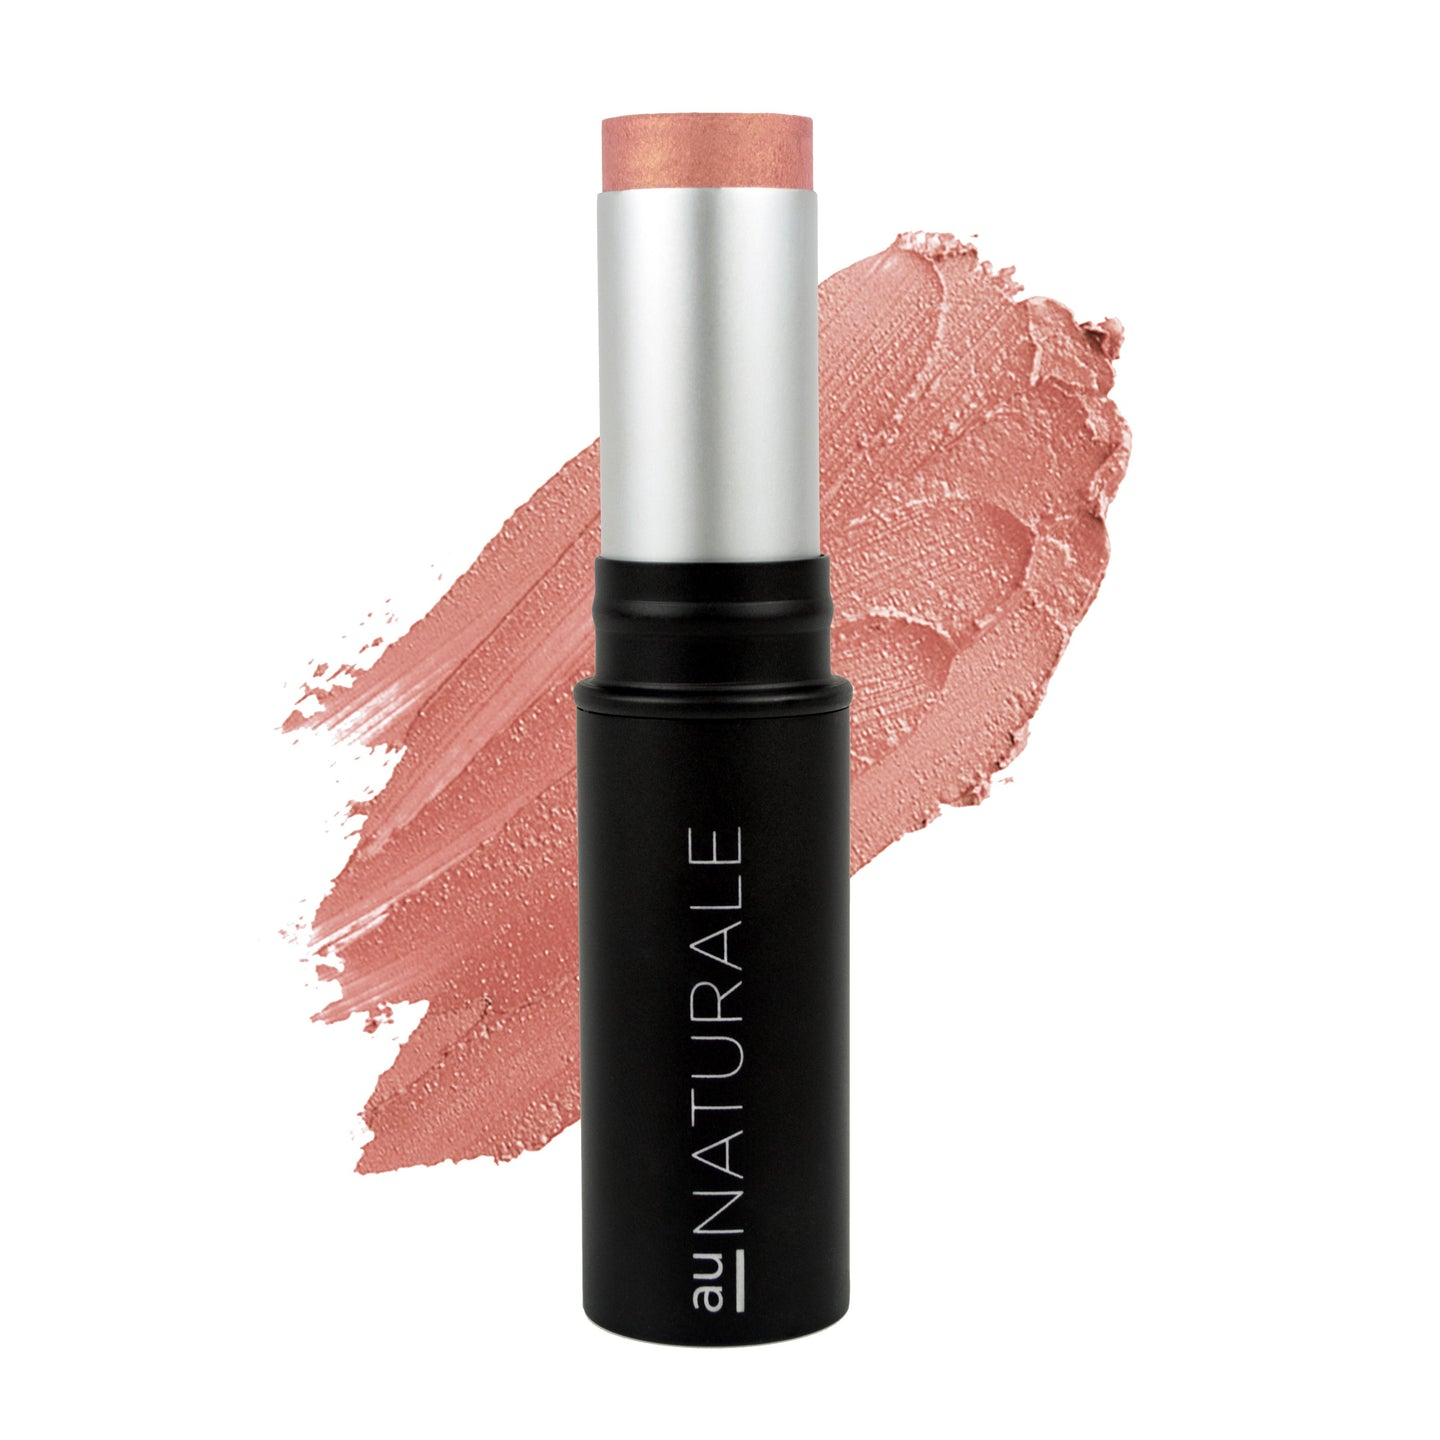 Shop Anywhere Face Creme Multi-Stick in Destiny by Au Naturale Cosmetics - Lets make it a trend #explorebeautiful